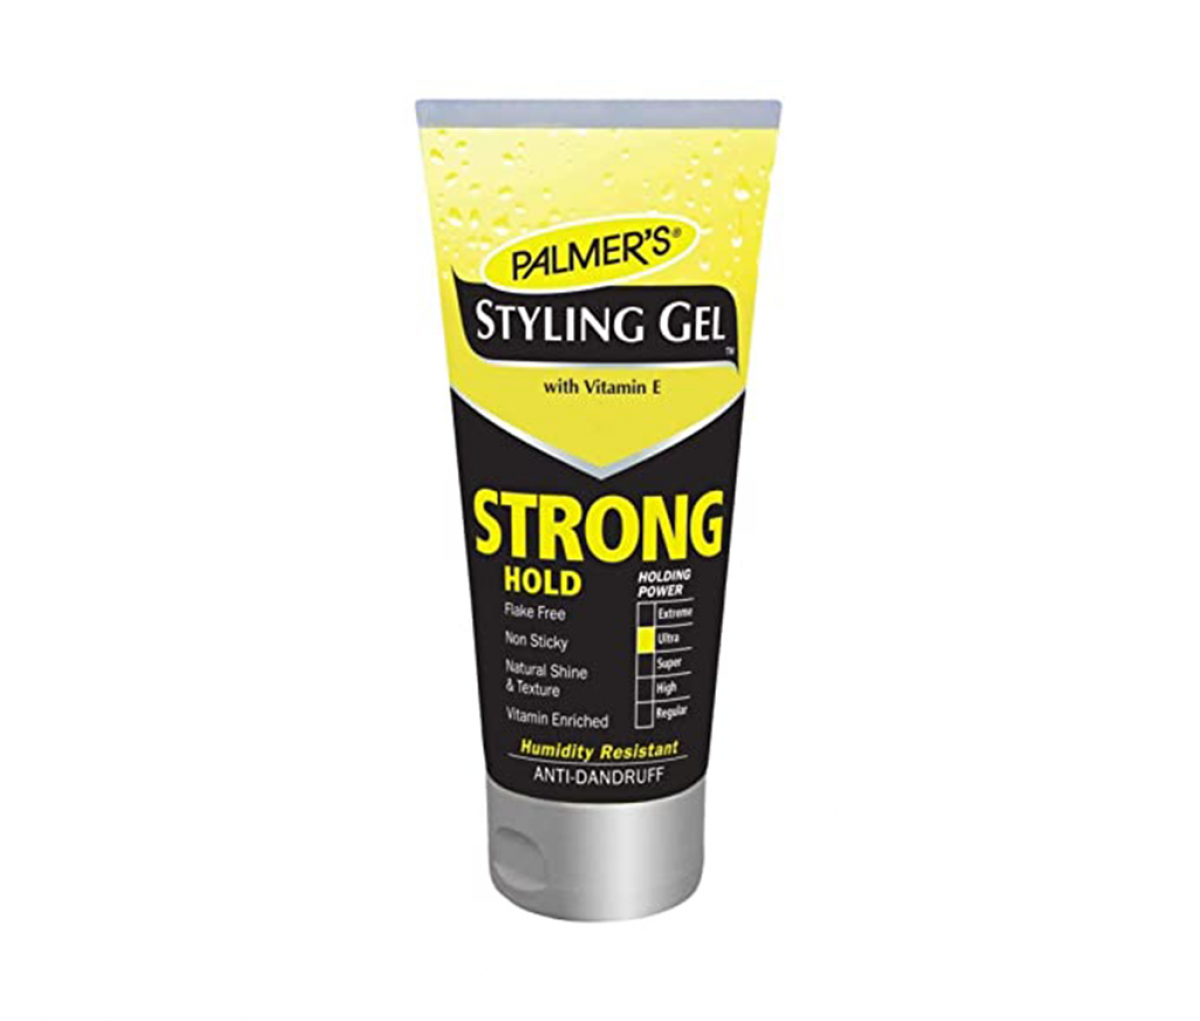 Palmers Styling Gel Strong Hold